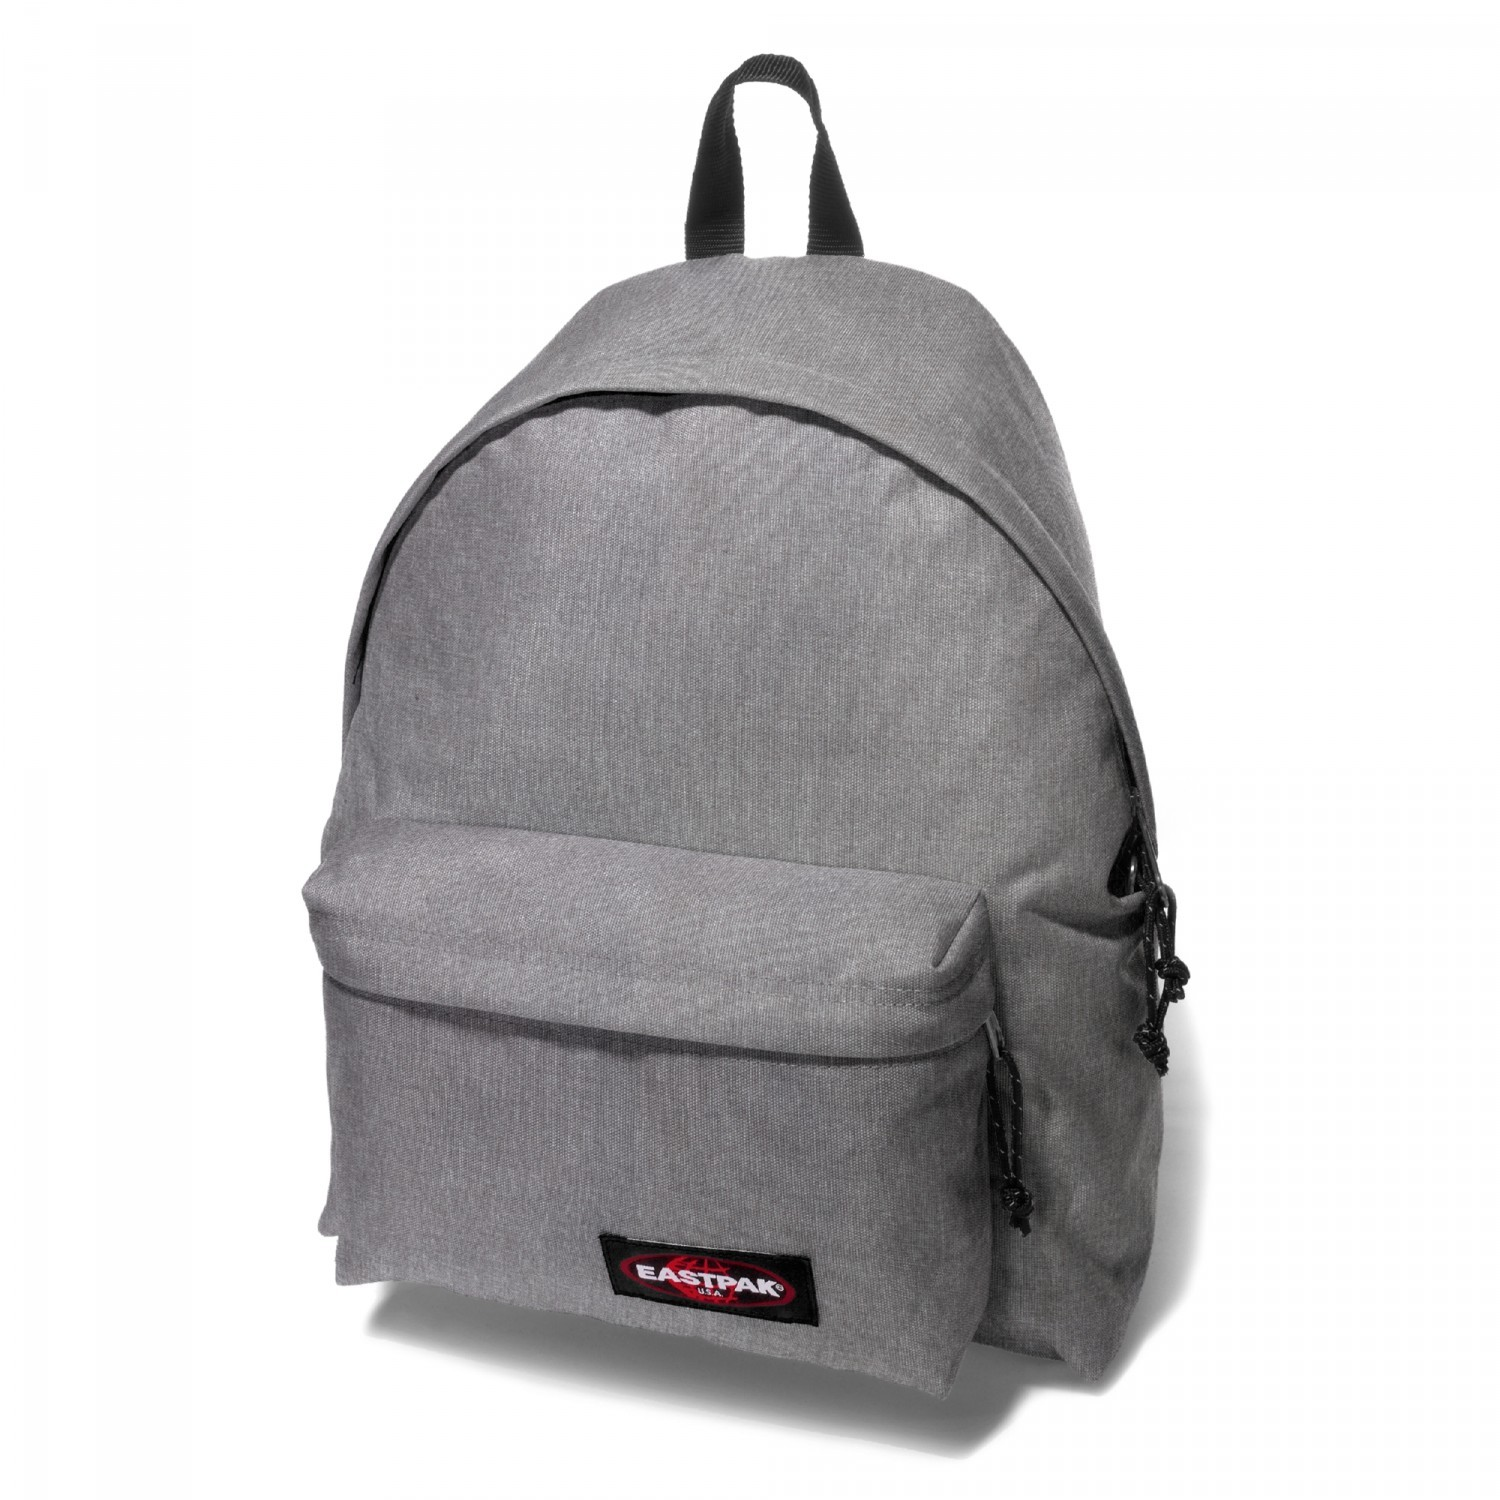 eastpak pak 39 r sunday grey ek620 grau 363 rucksack backbag. Black Bedroom Furniture Sets. Home Design Ideas